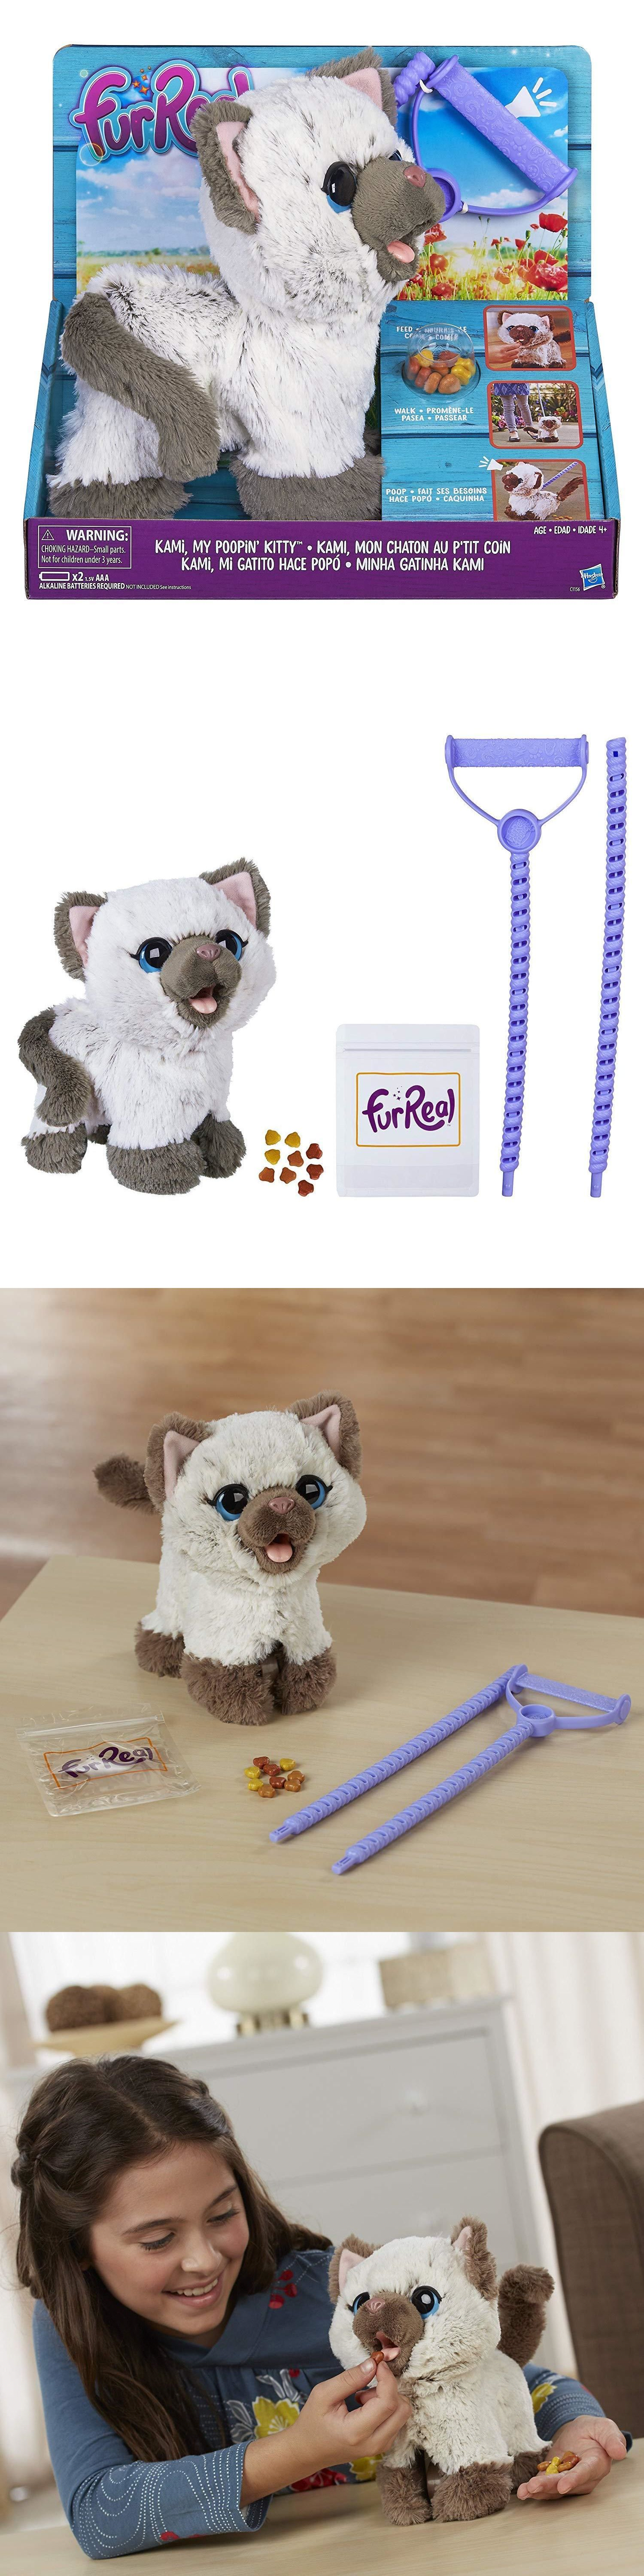 Furreal Friends Kami My Poopin Kitty Toy 630509514052 Ebay Fur Real Friends Cat Toys Kitty